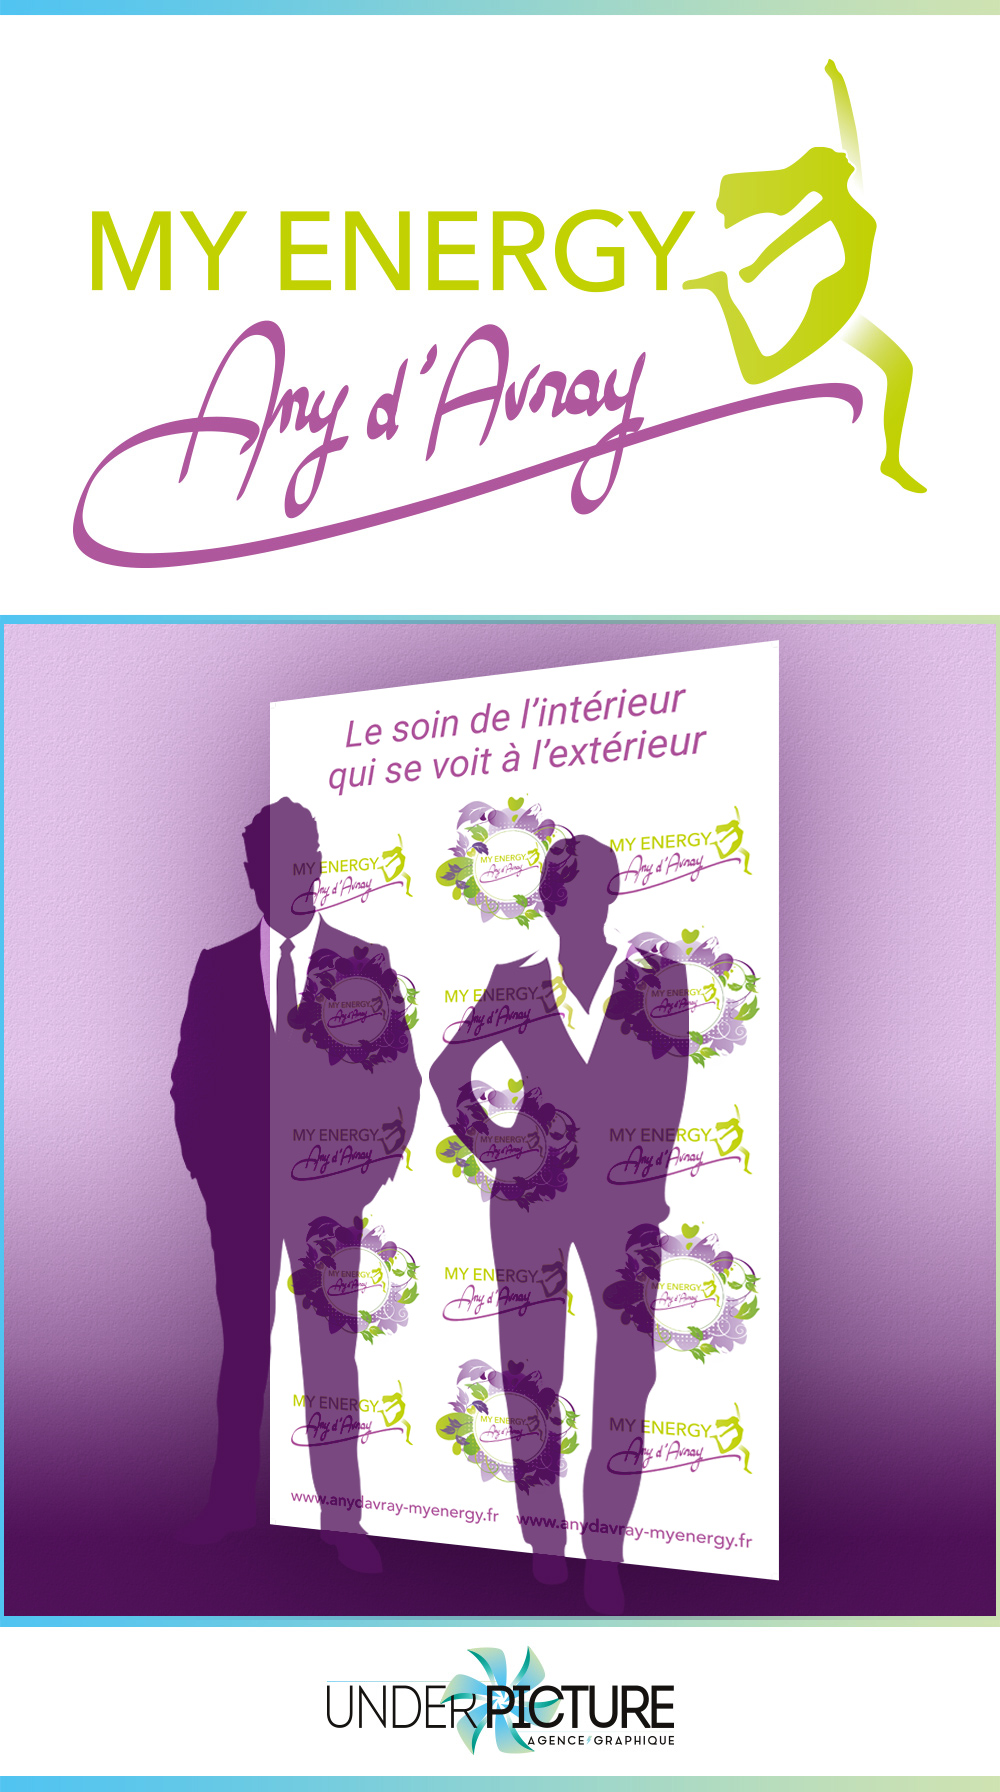 Logo et photocall pour My energy Any d'Avray